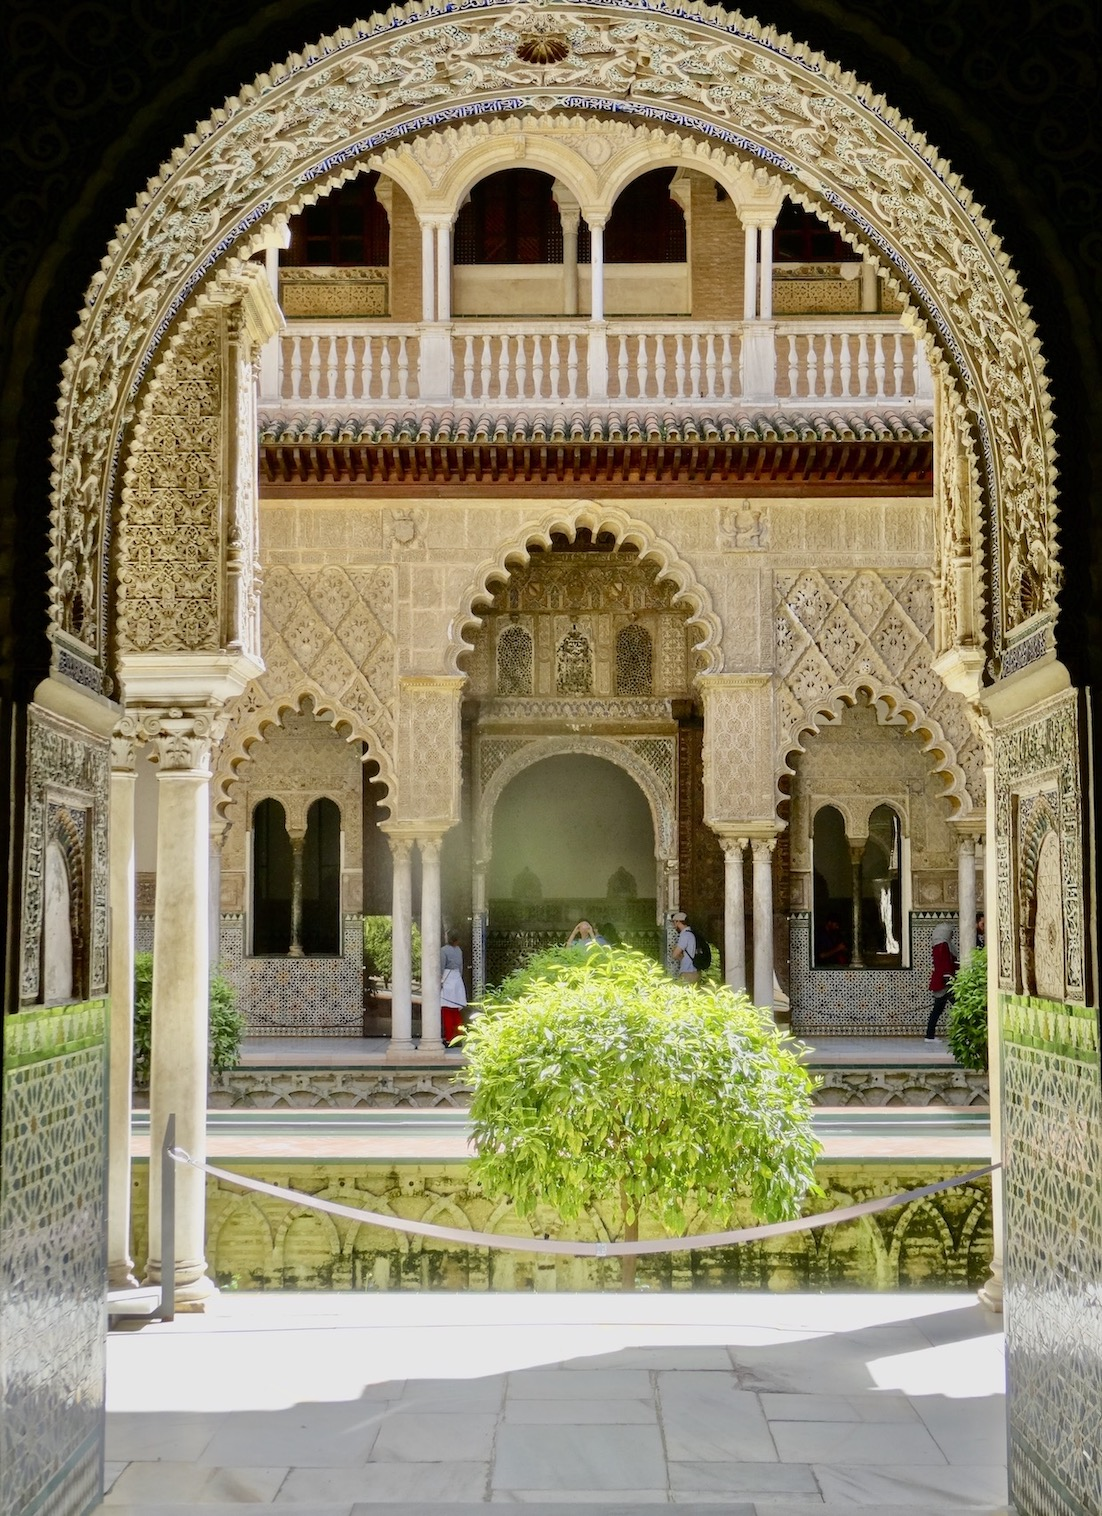 Courtyard of The Maidens The Alcazar.